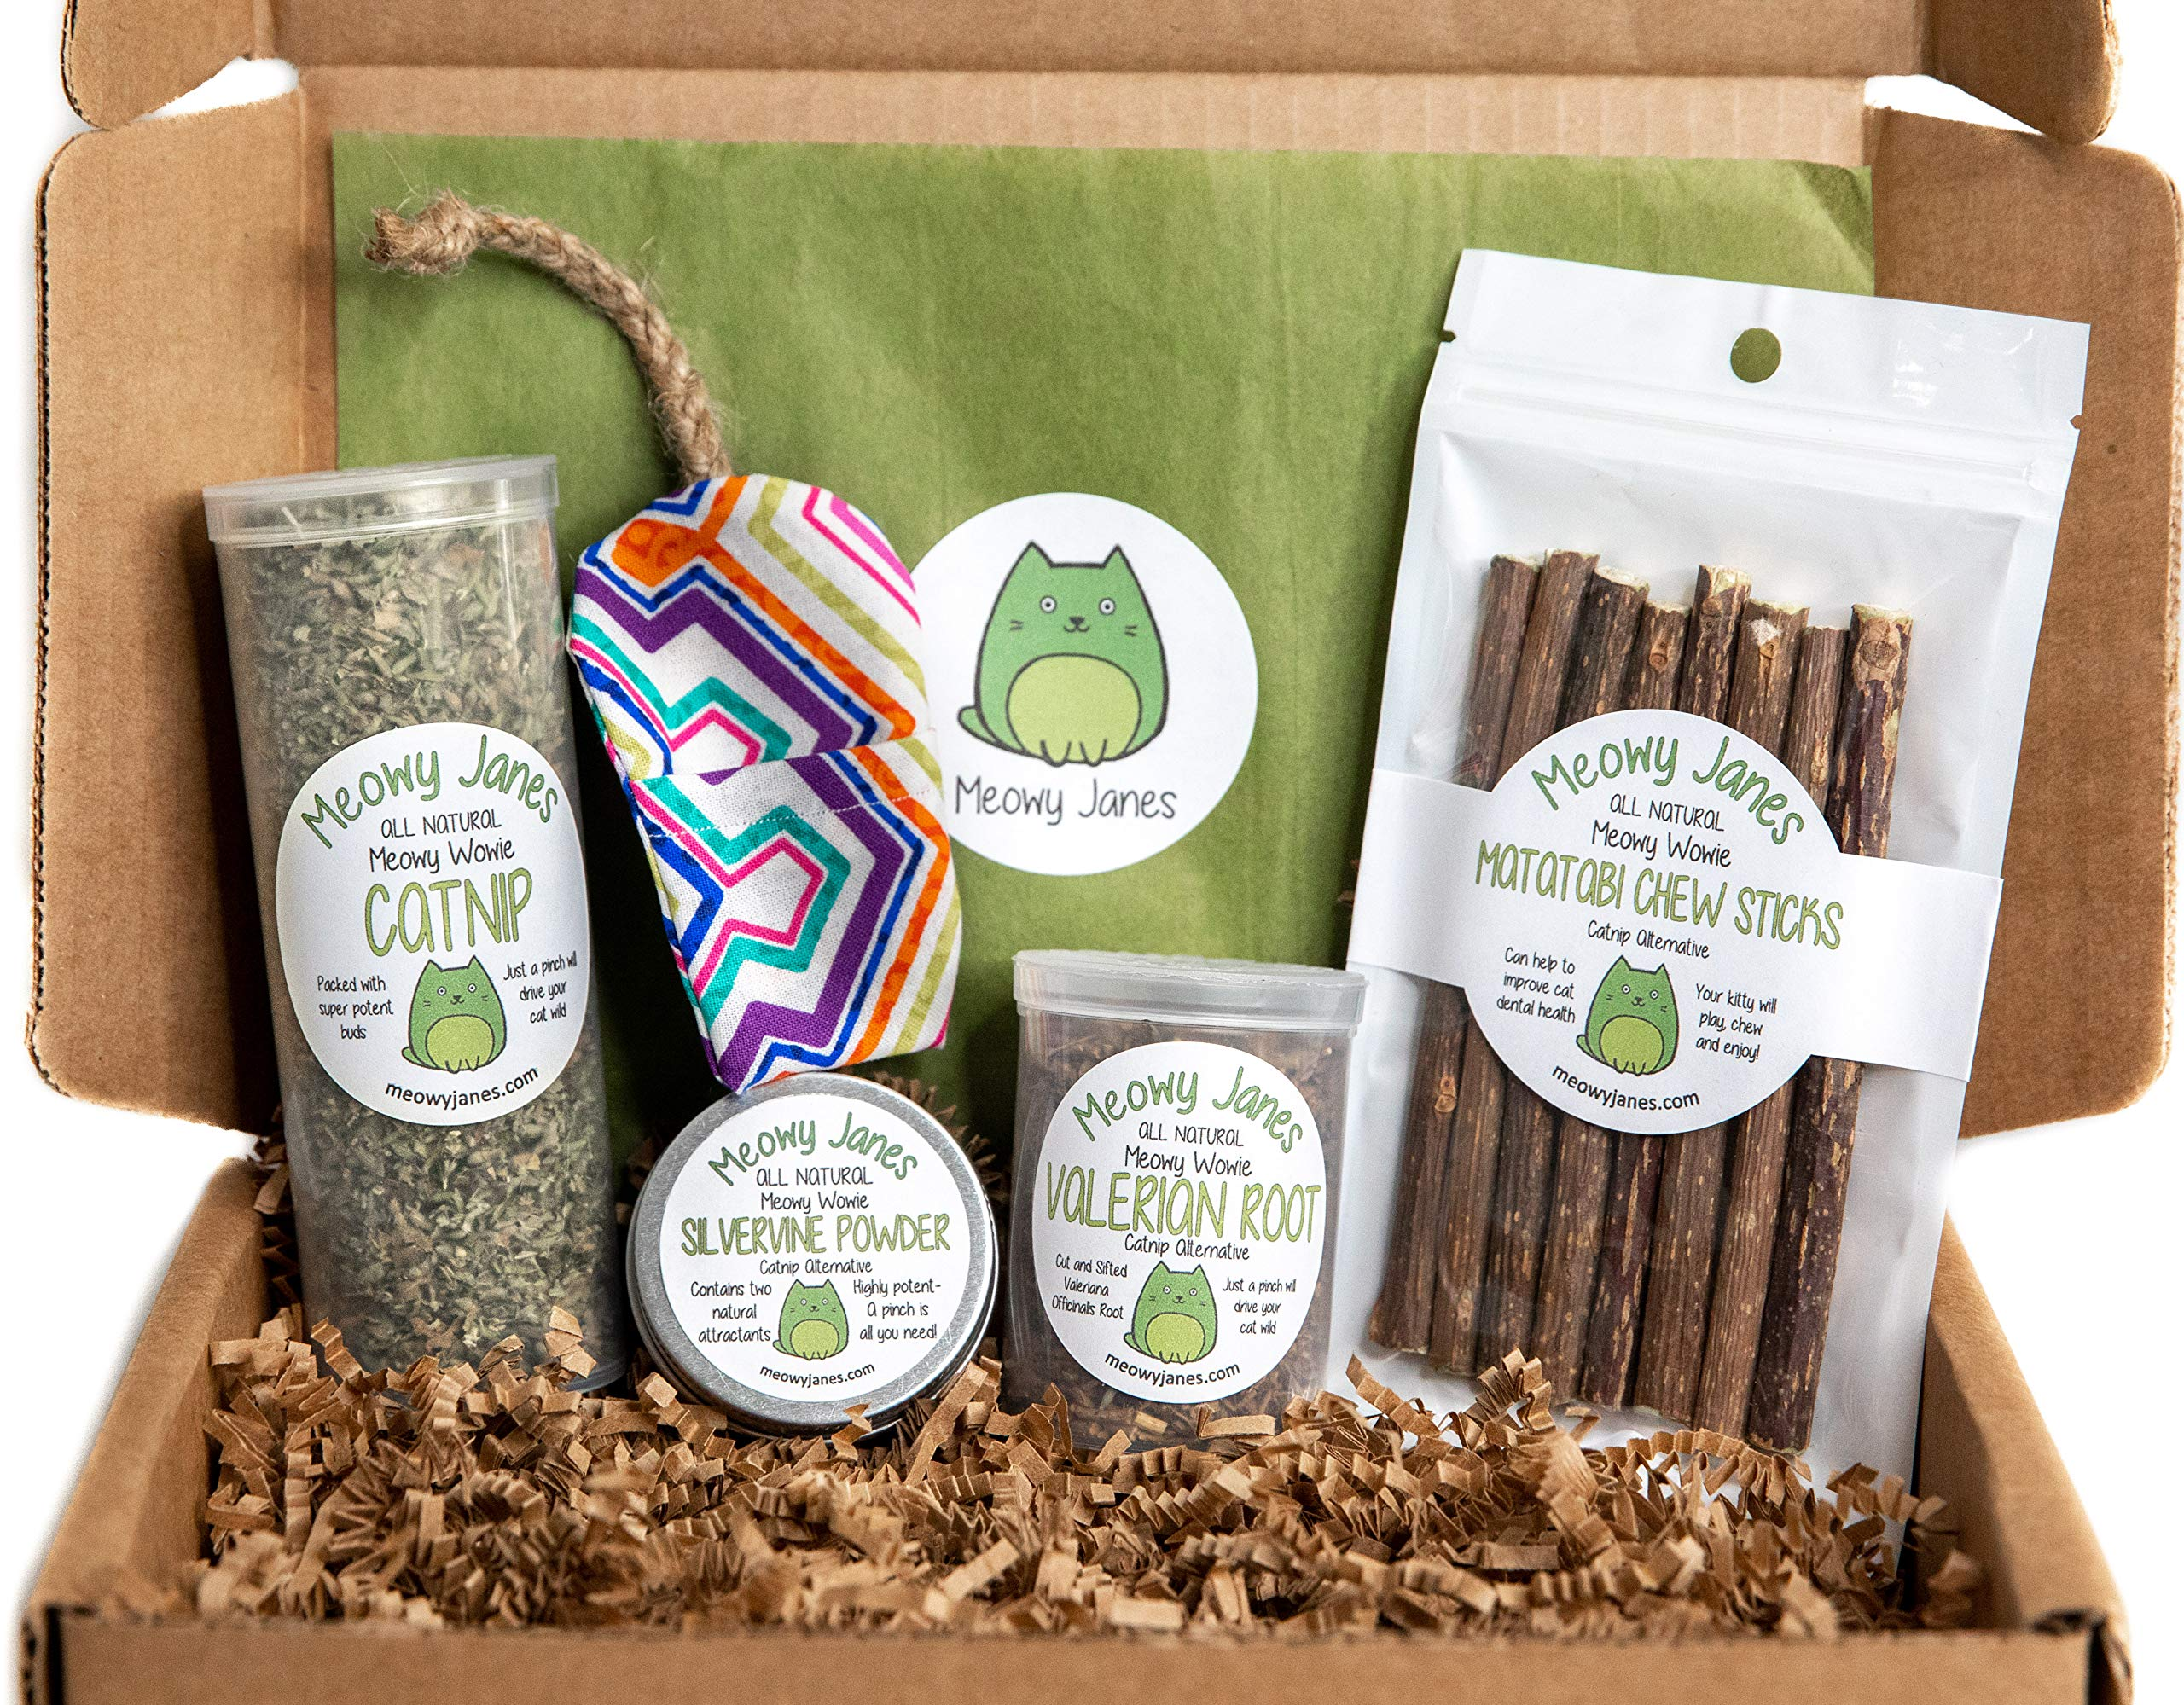 Catnip Alternative Variety Box with Handmade Refillable Mouse Toy - Catnip, Valerian Root, Silvervine Powder, Matatabi Sticks - Cat Toy and Cat Treat Sampler - Cat Gift Box by Meowy Janes